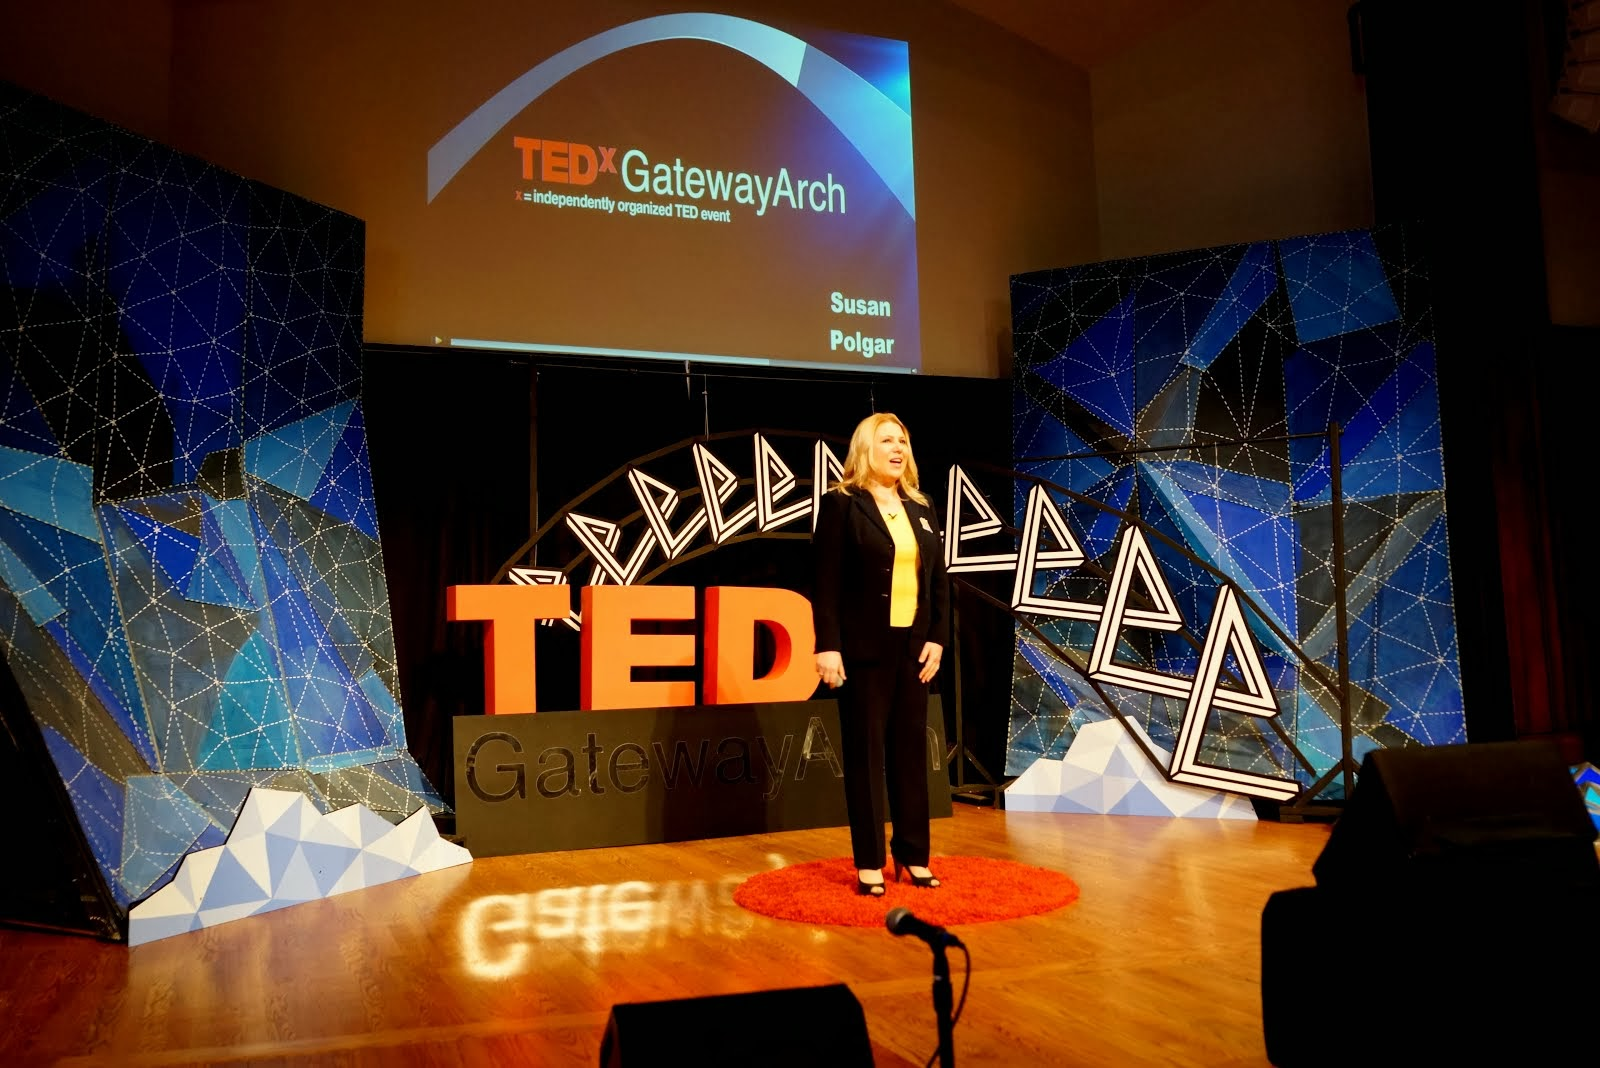 TEDx Gateway Arch on January 11, 2014